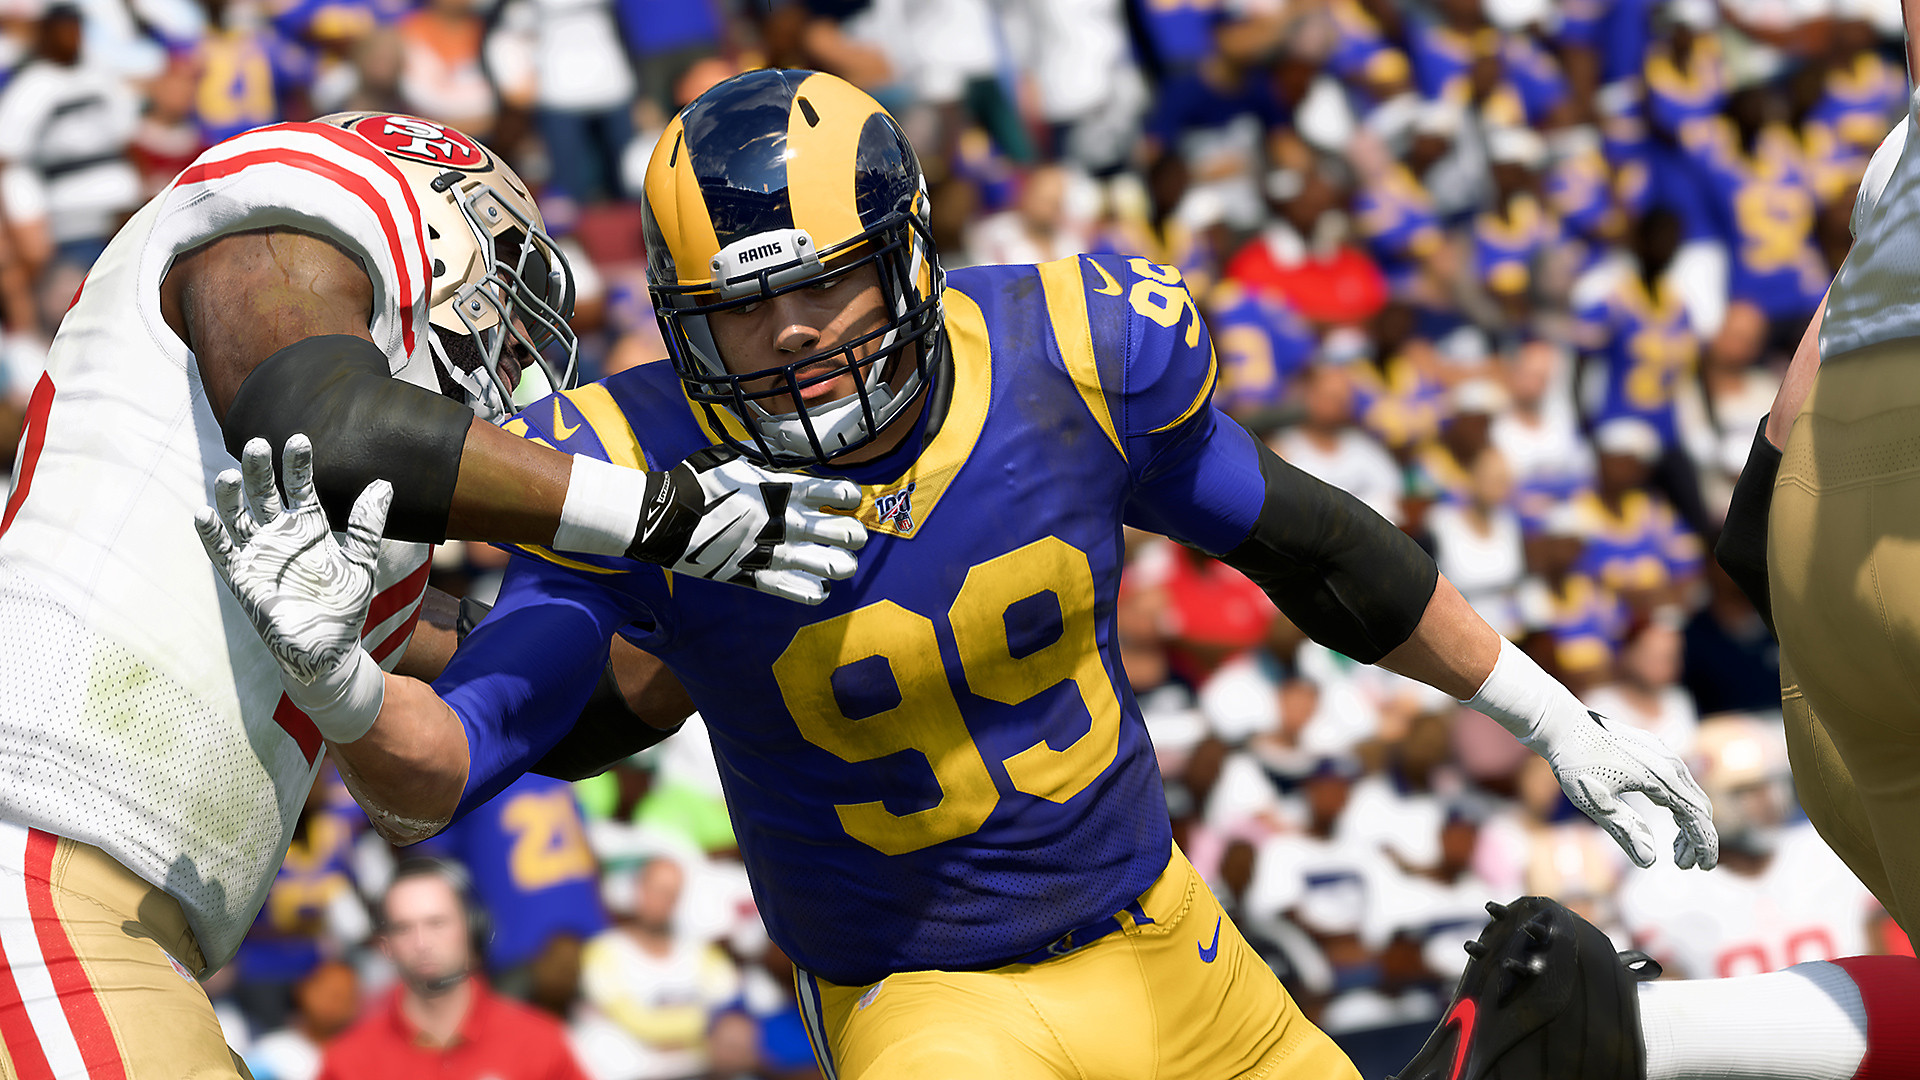 Madden NFL 20 screenshot - Aaron Donald running in